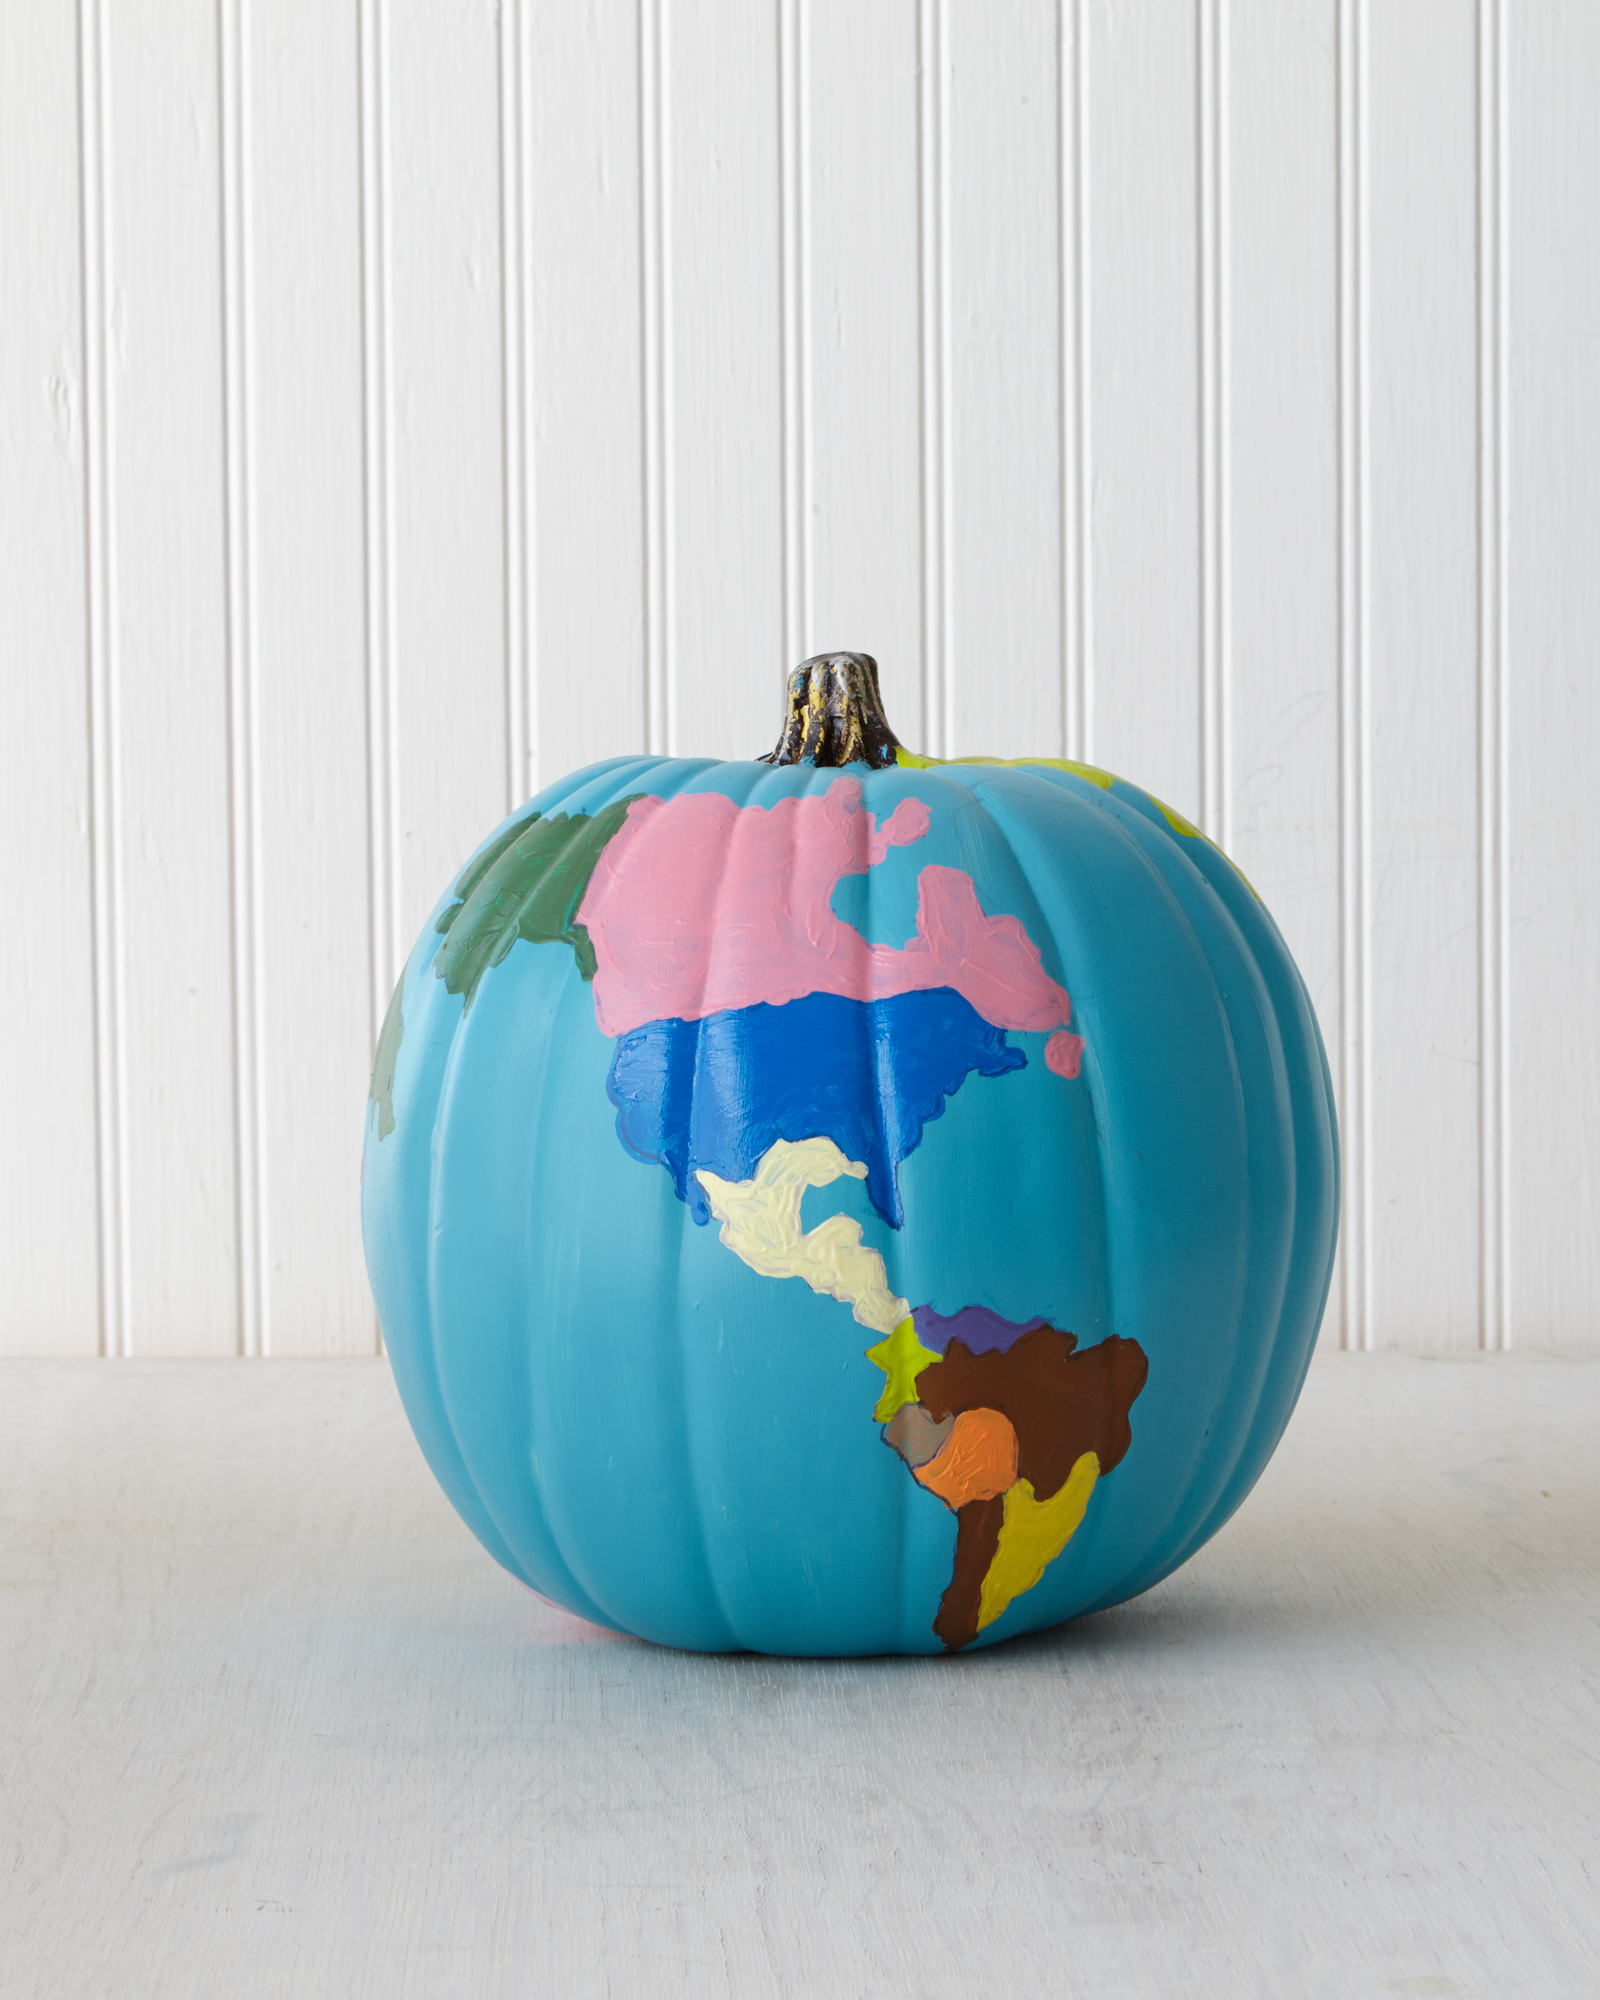 The Globe Pumpkin